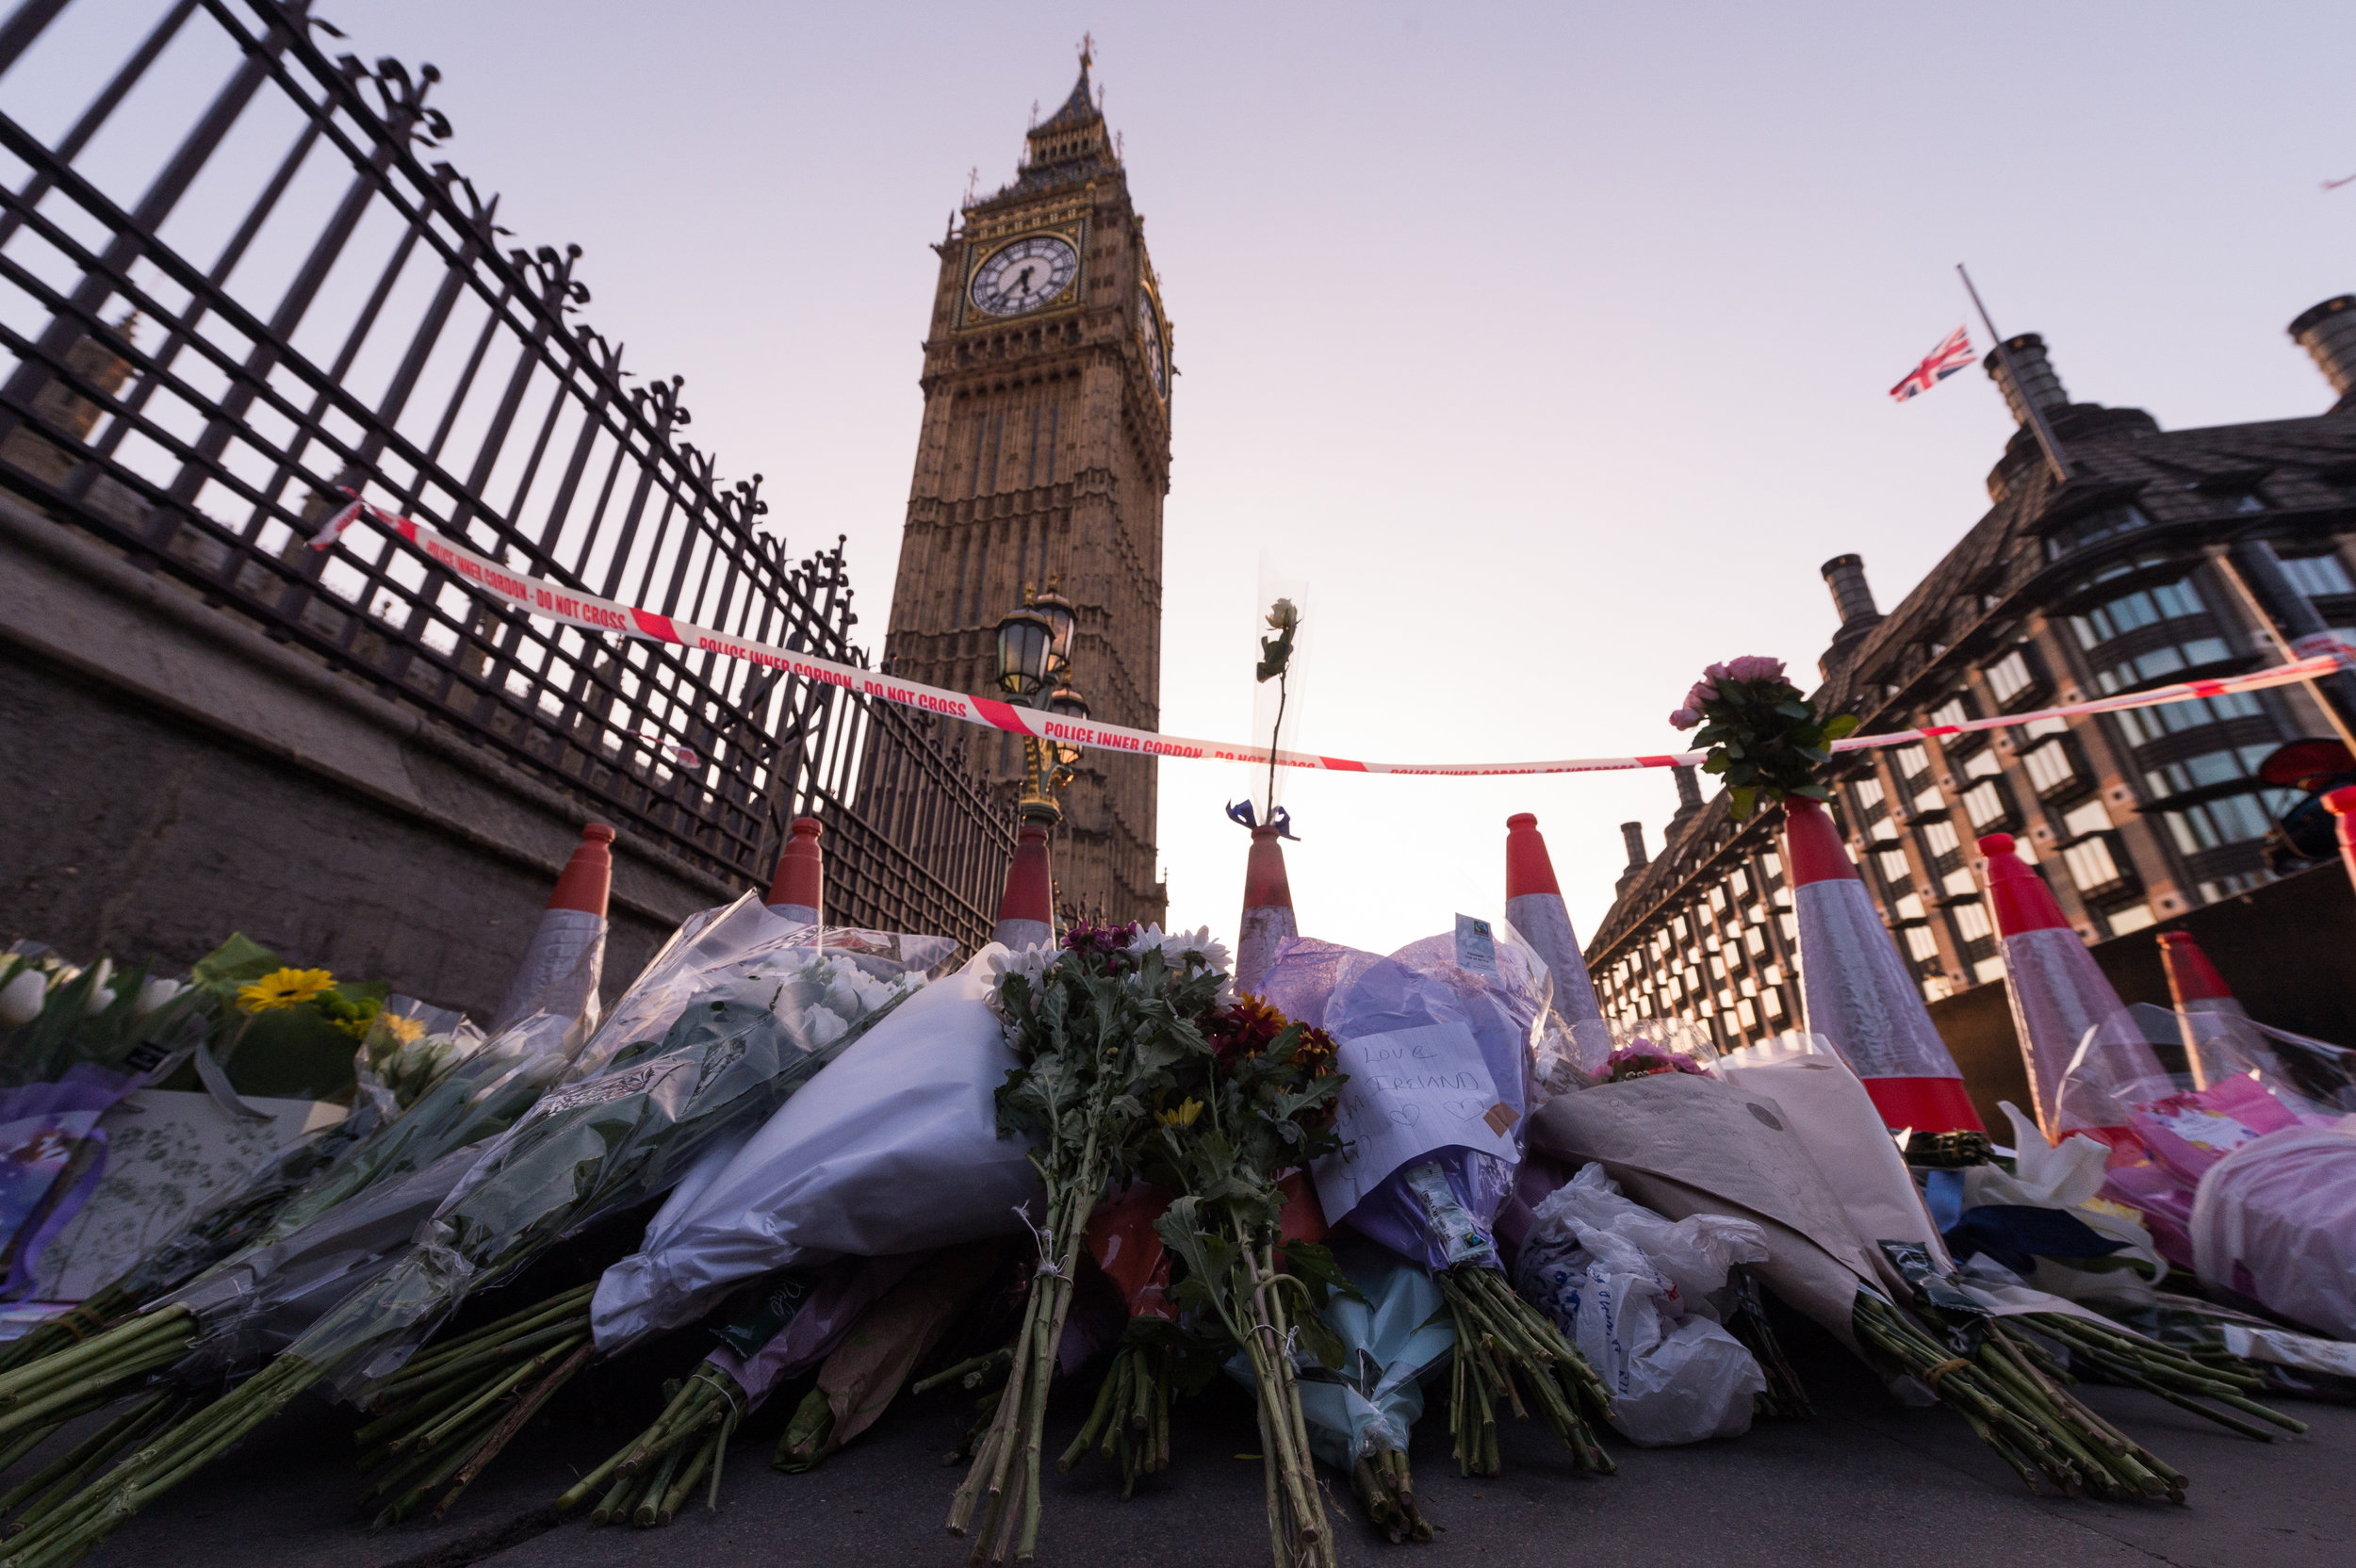 Tributes to the victims are left on the North side of Westminster bridge next to the police cordon where the attack took place.